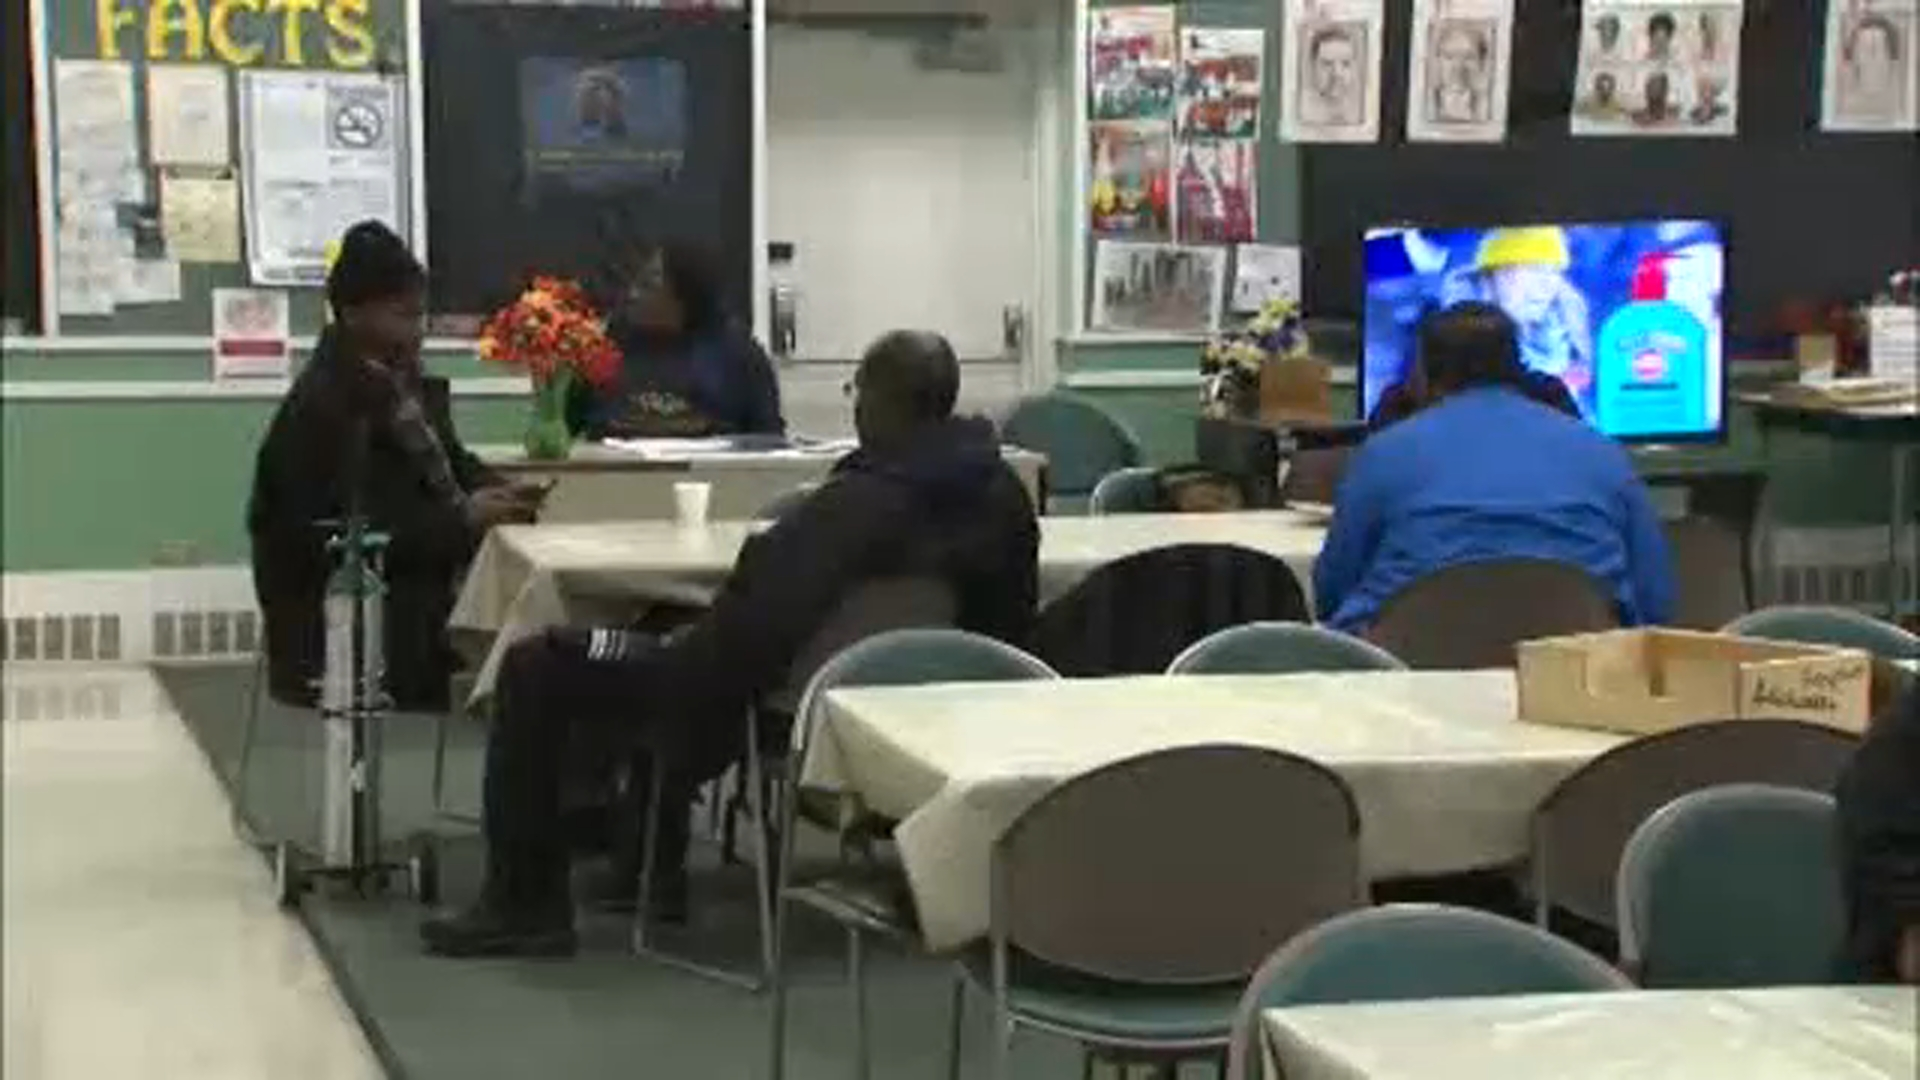 Find a Chicago area warming center near you